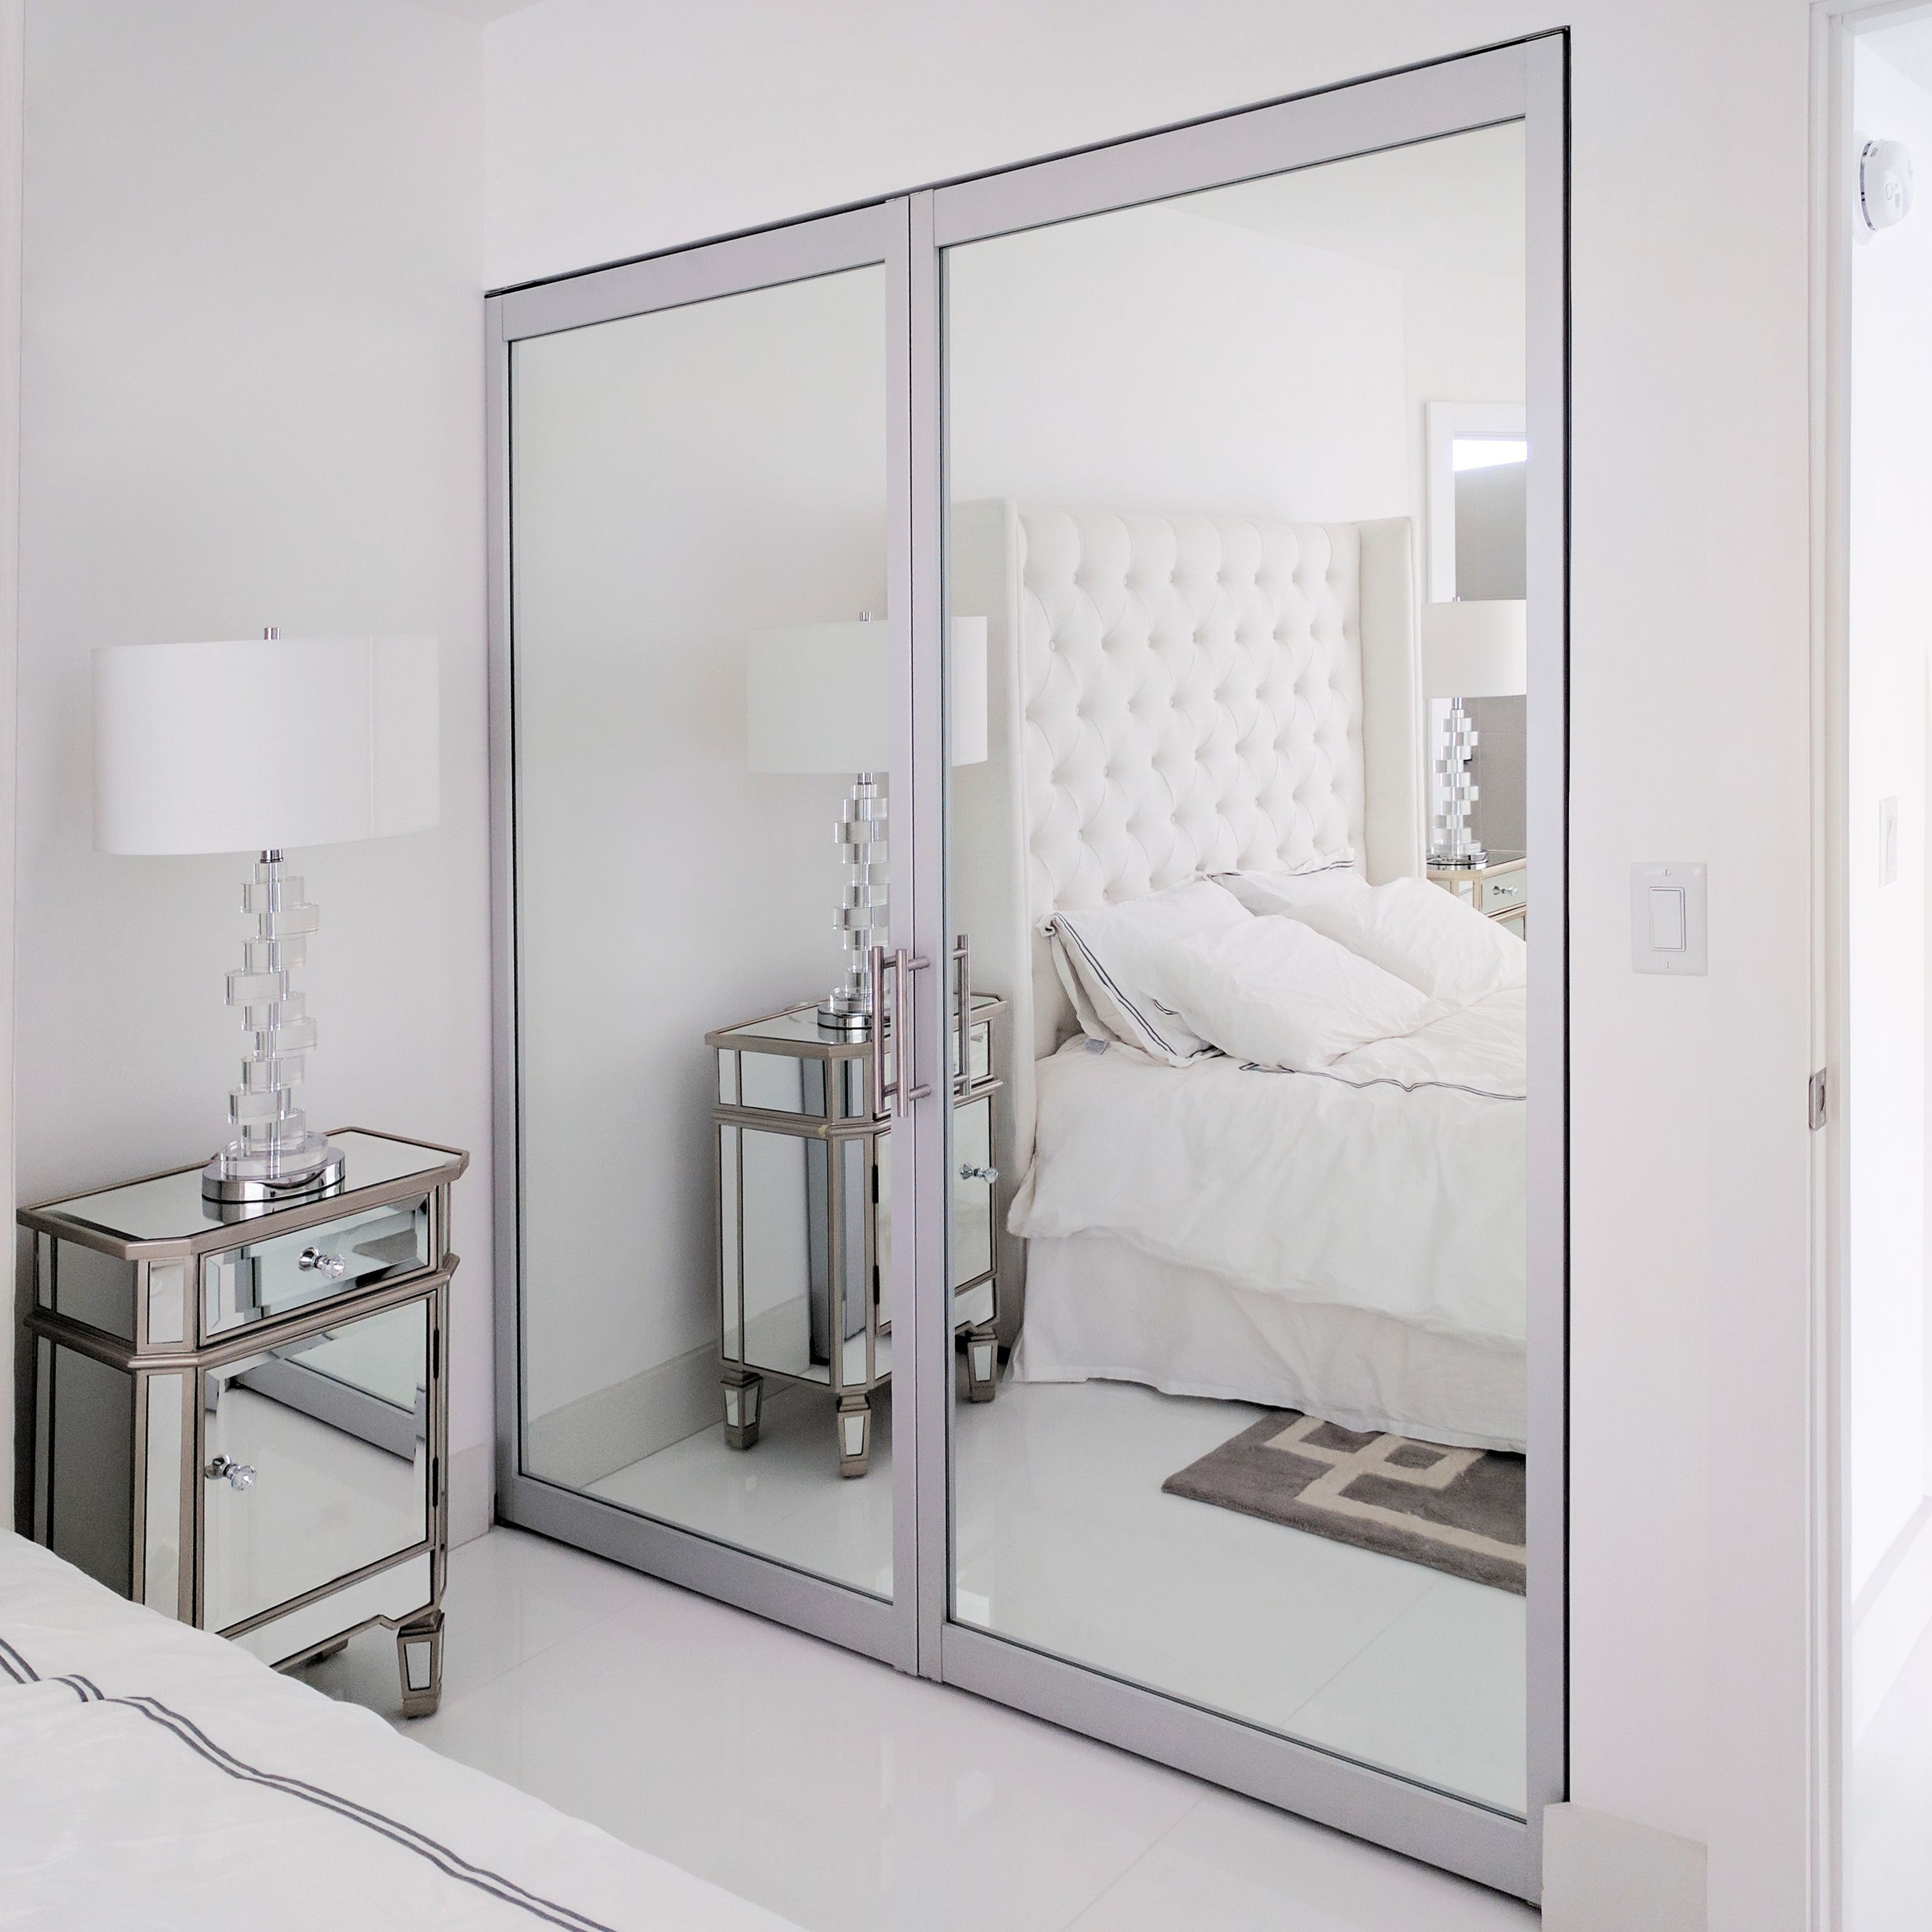 Double Swing Door With Mirrored Glass Silver Frame And Designer